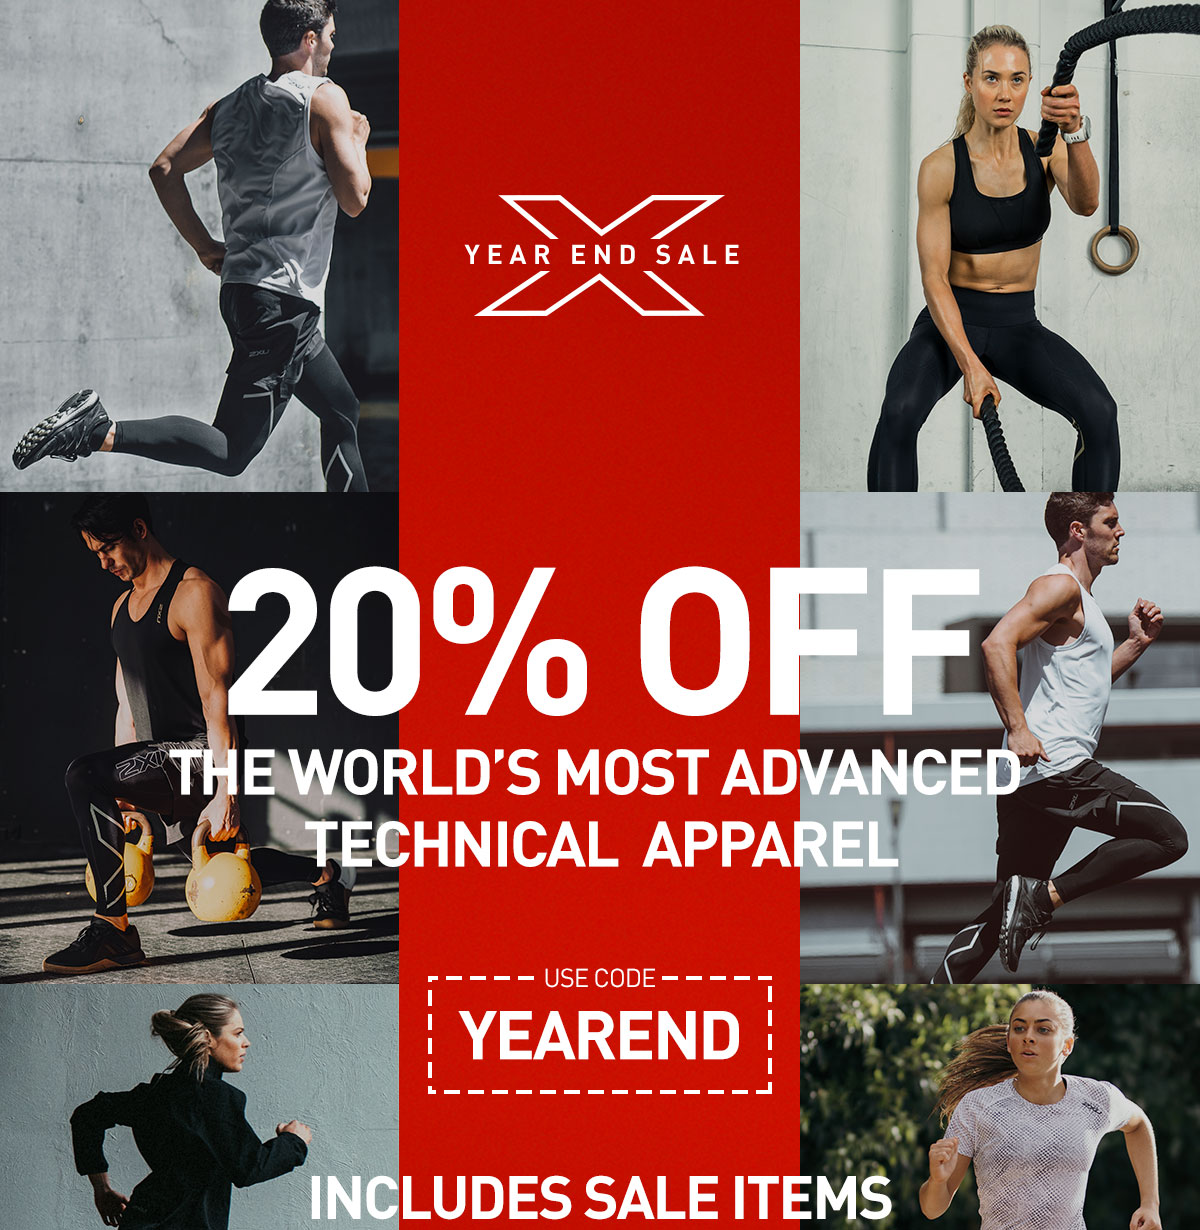 End Year Sale - 20% Off Site-wide